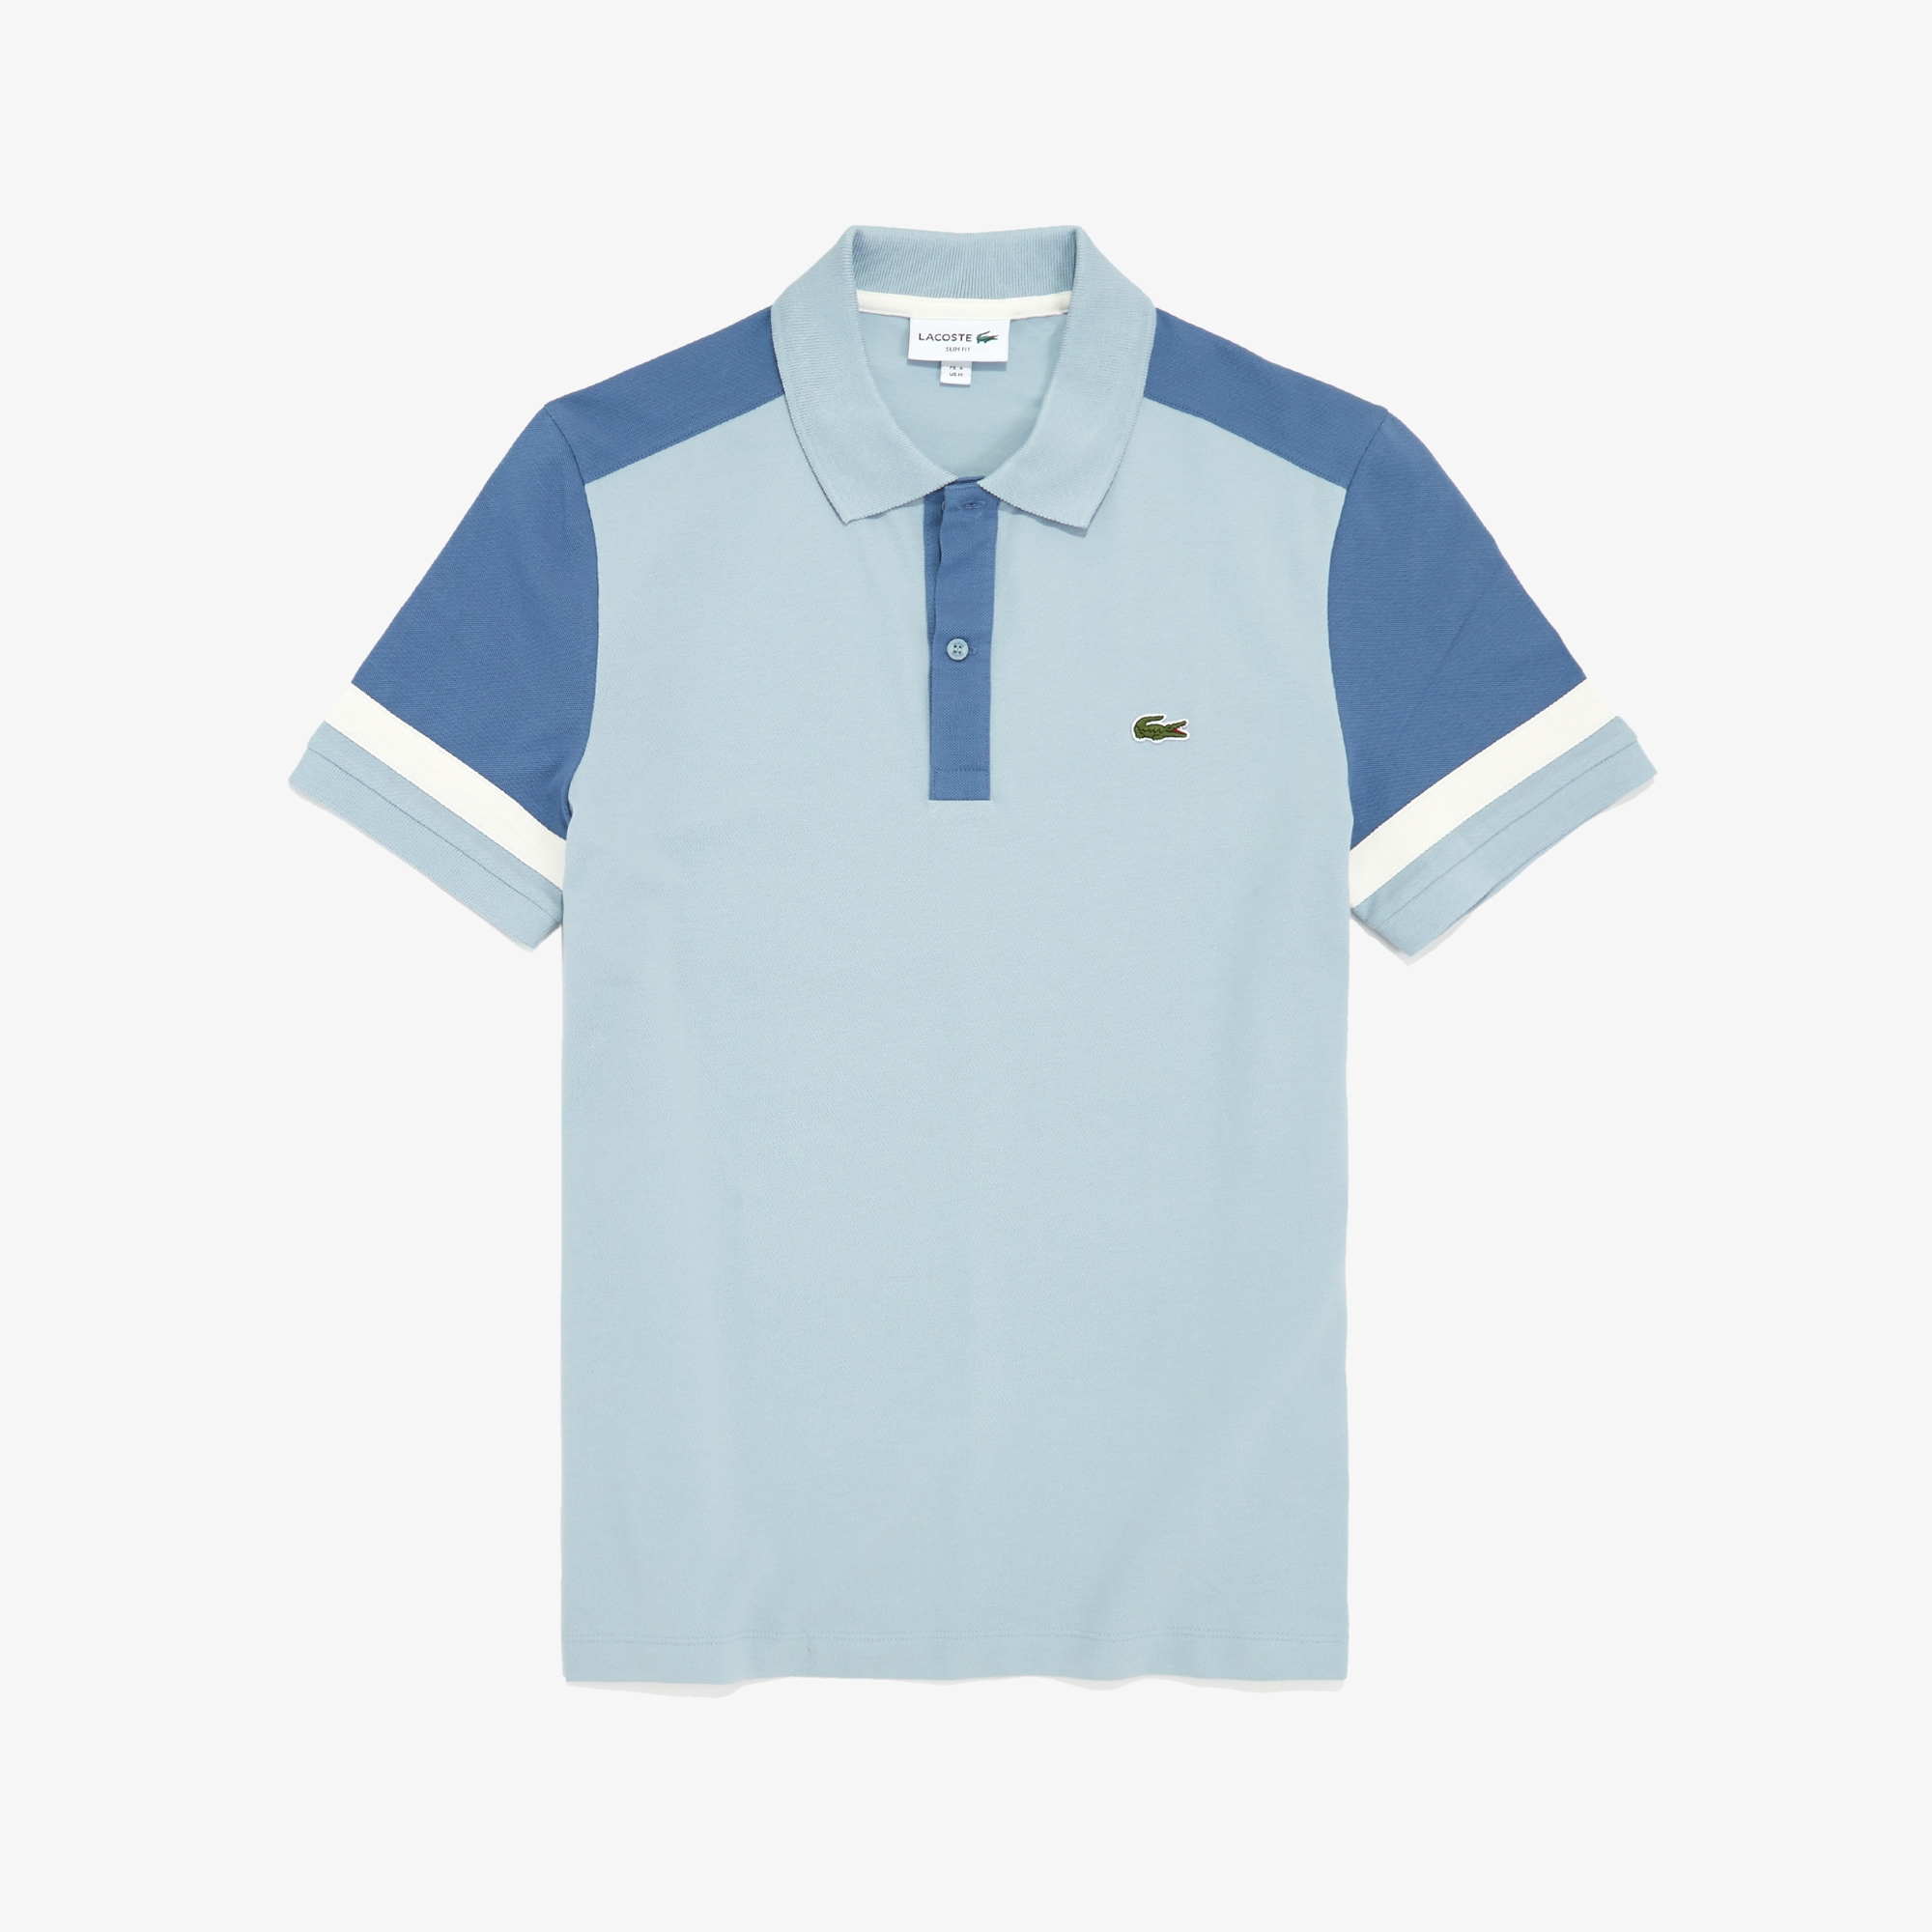 sports shoes 1c1dd af106 Men's Clothing | Lacoste Polos, Shirts, Pants and Sportswear